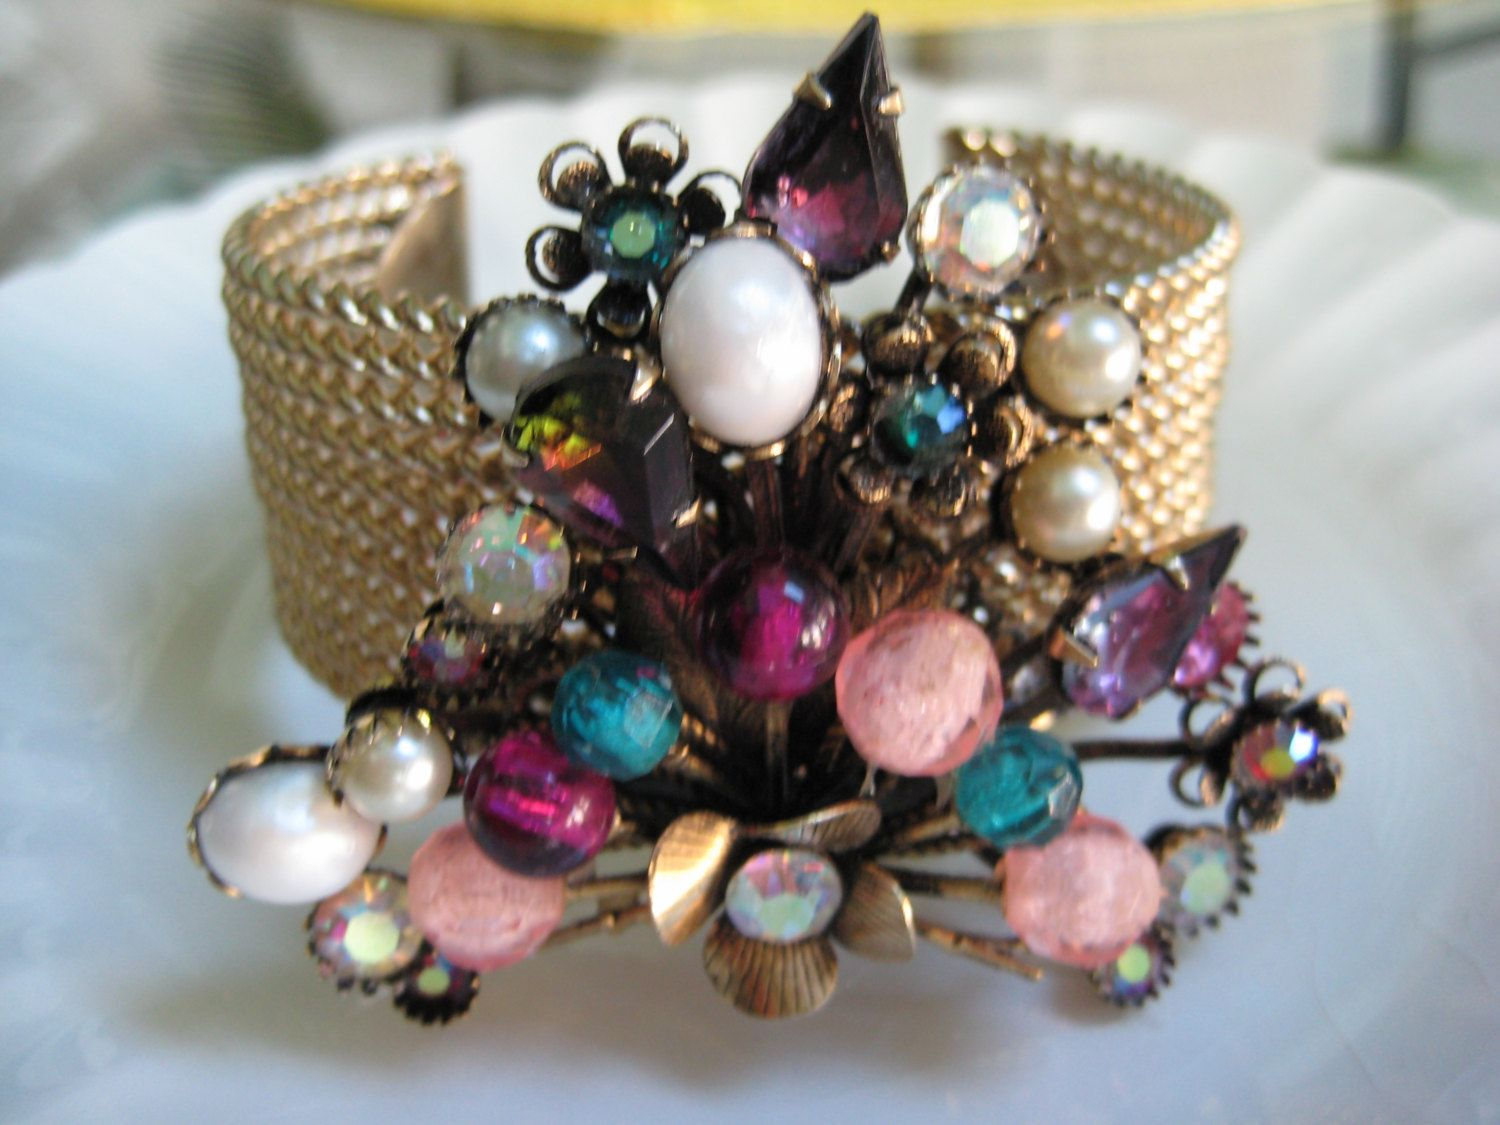 DV OOAK Vintage Brooch Bracelet, Cuff Bracelet, Multi Color Stones, Repurposed, Wedding, Bridesmaid, Repurposed by DragonflyVintiques on Etsy